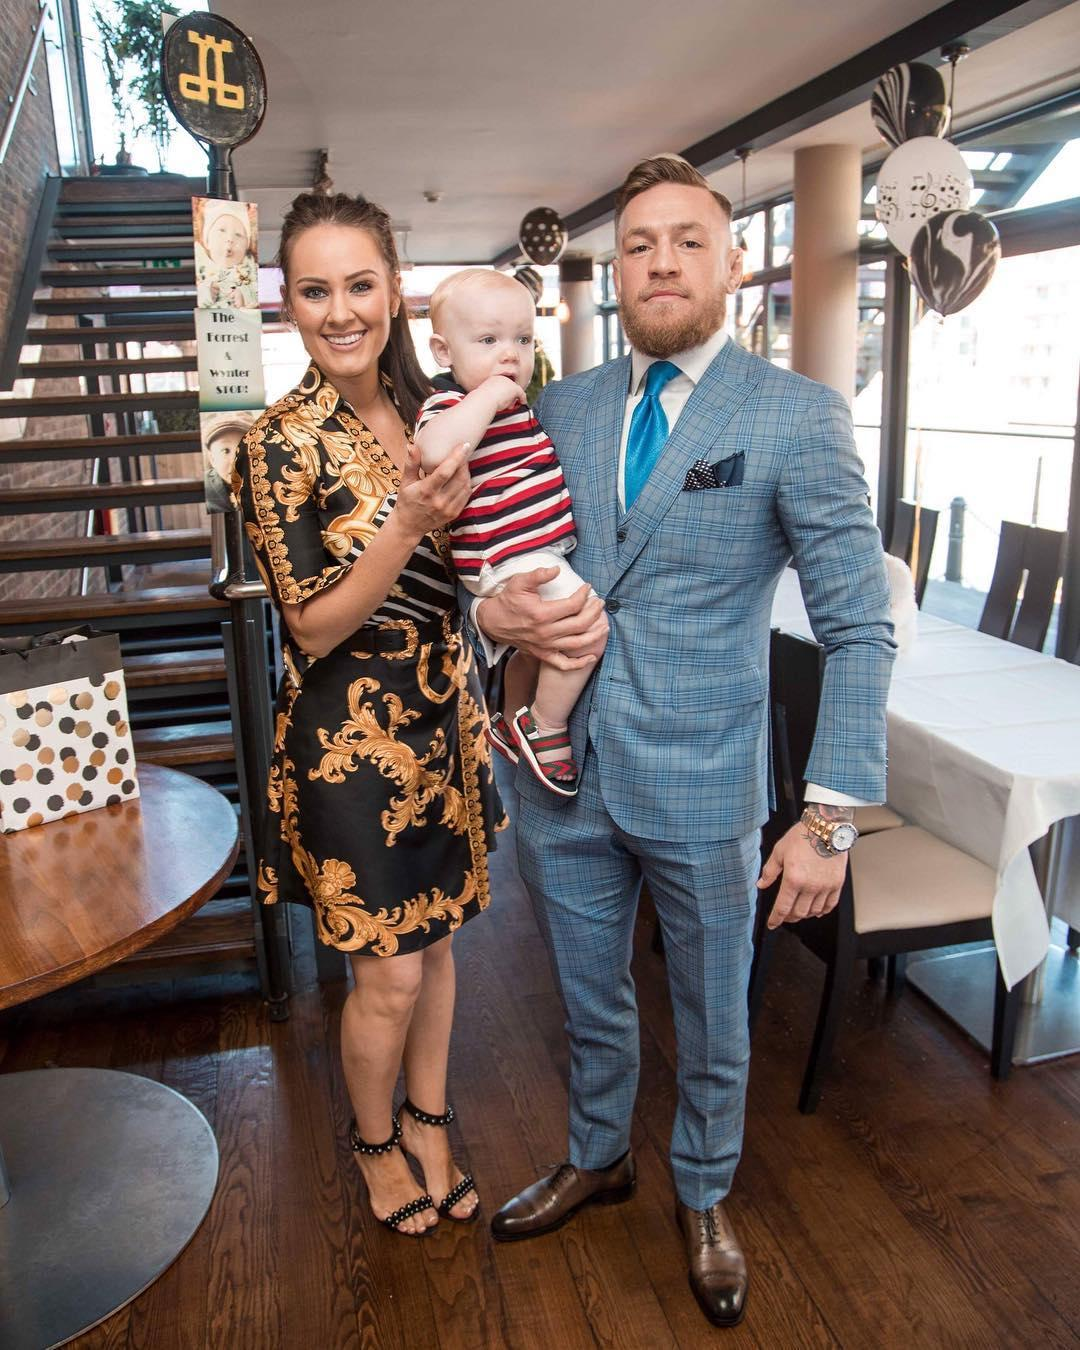 There will soon be a new addition to family McGregor as Conor's partner Dee Devlin is expecting their second child